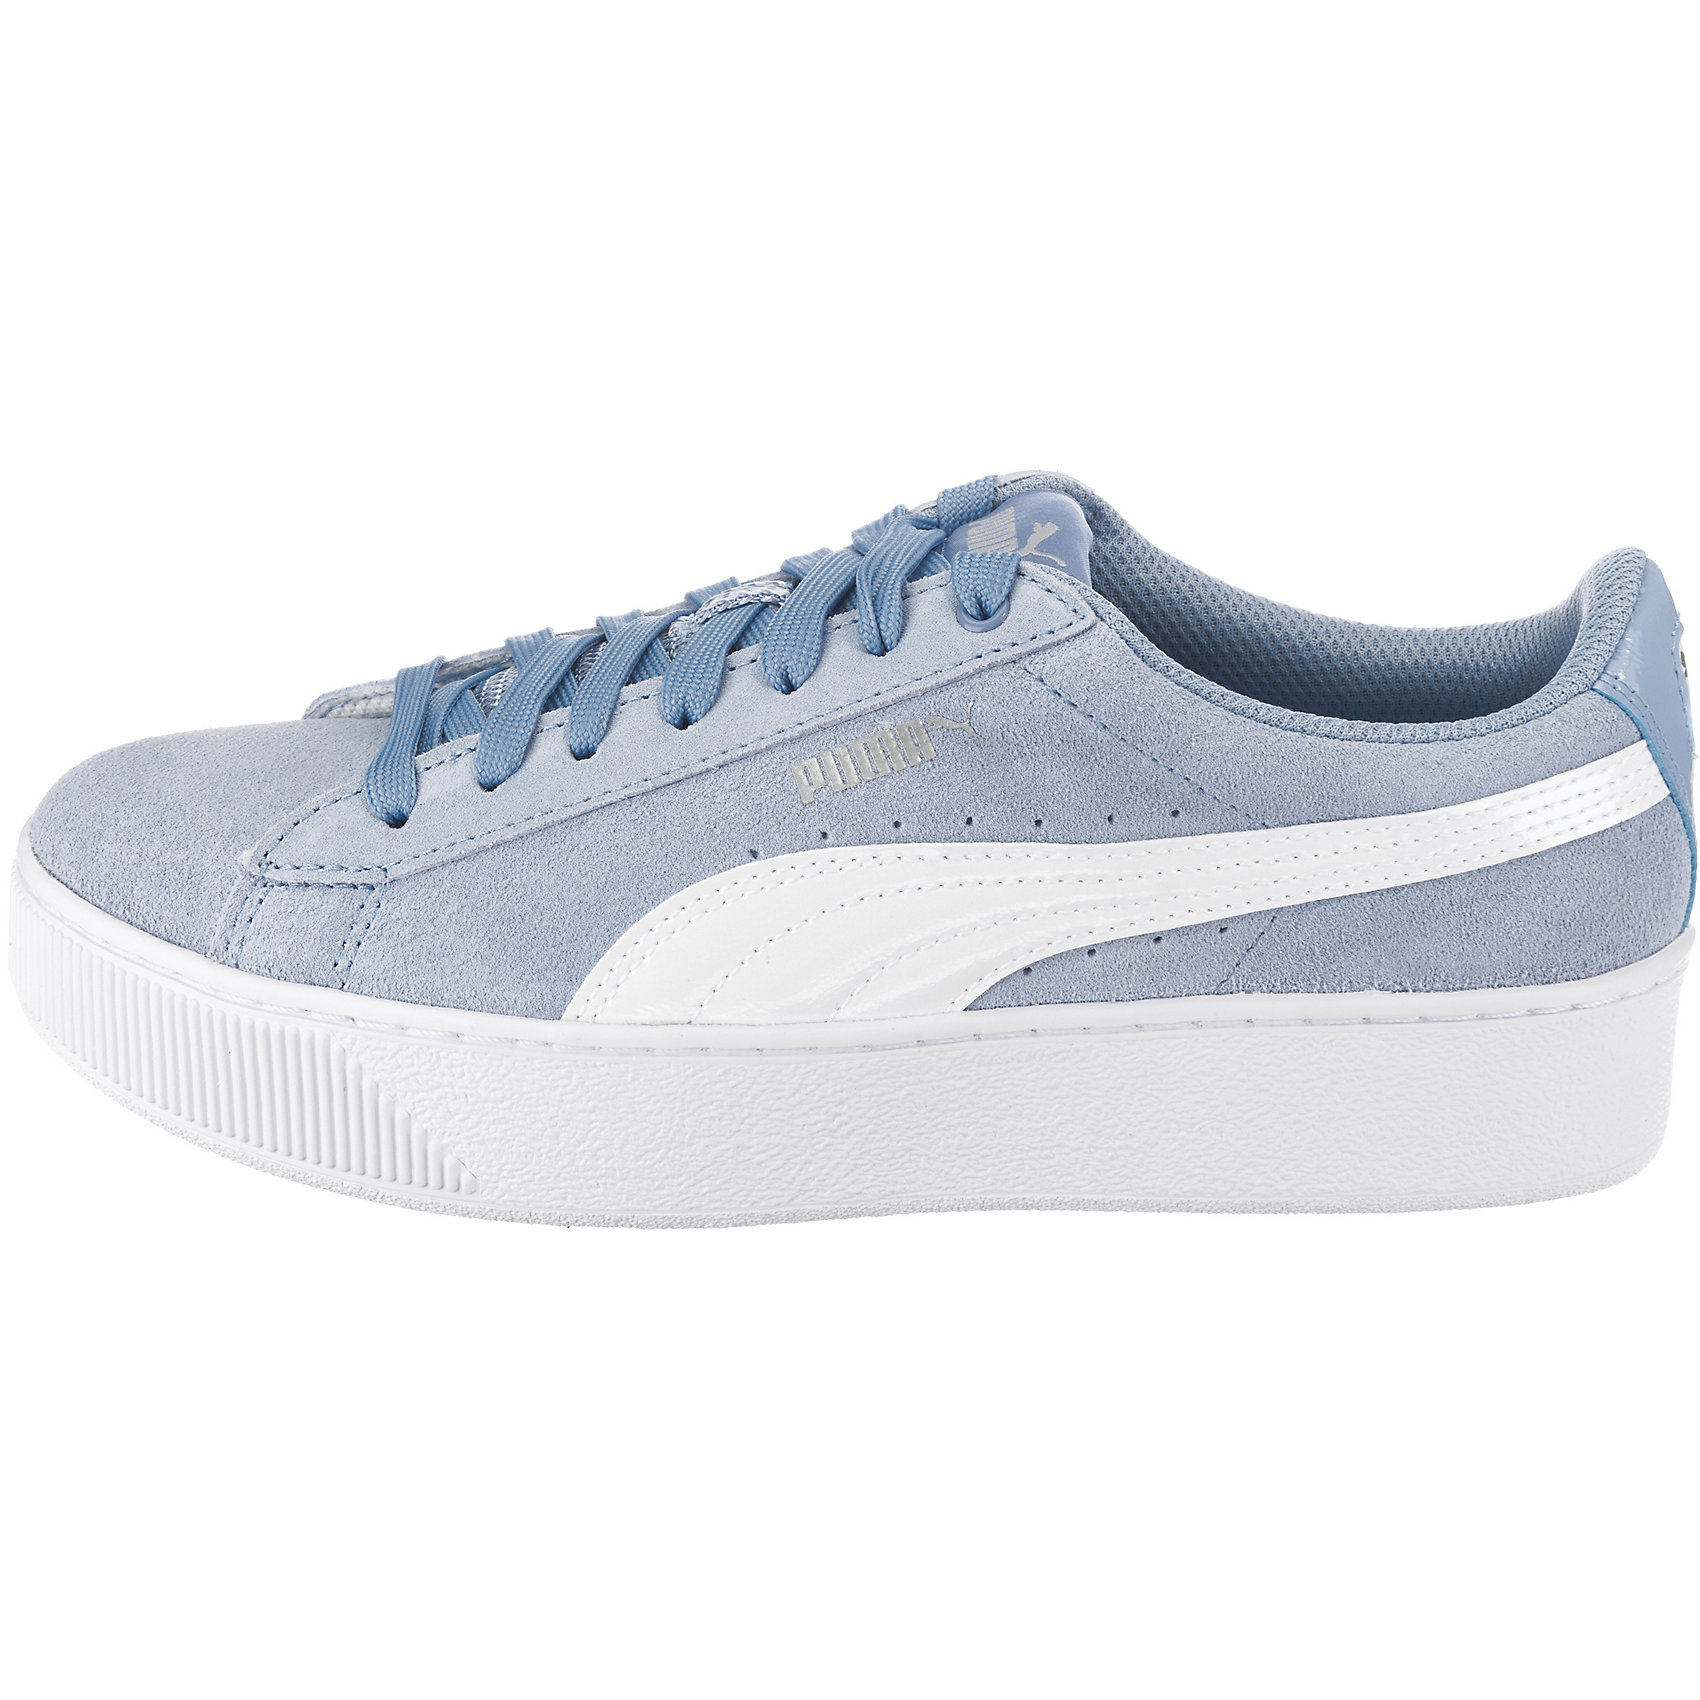 info for f5f7e 1c697 ... Nike Roshe Run NM FB 685196 003 003 003 Mens Trainers sneakers shoes  CLEARANCE 25d9ee ...